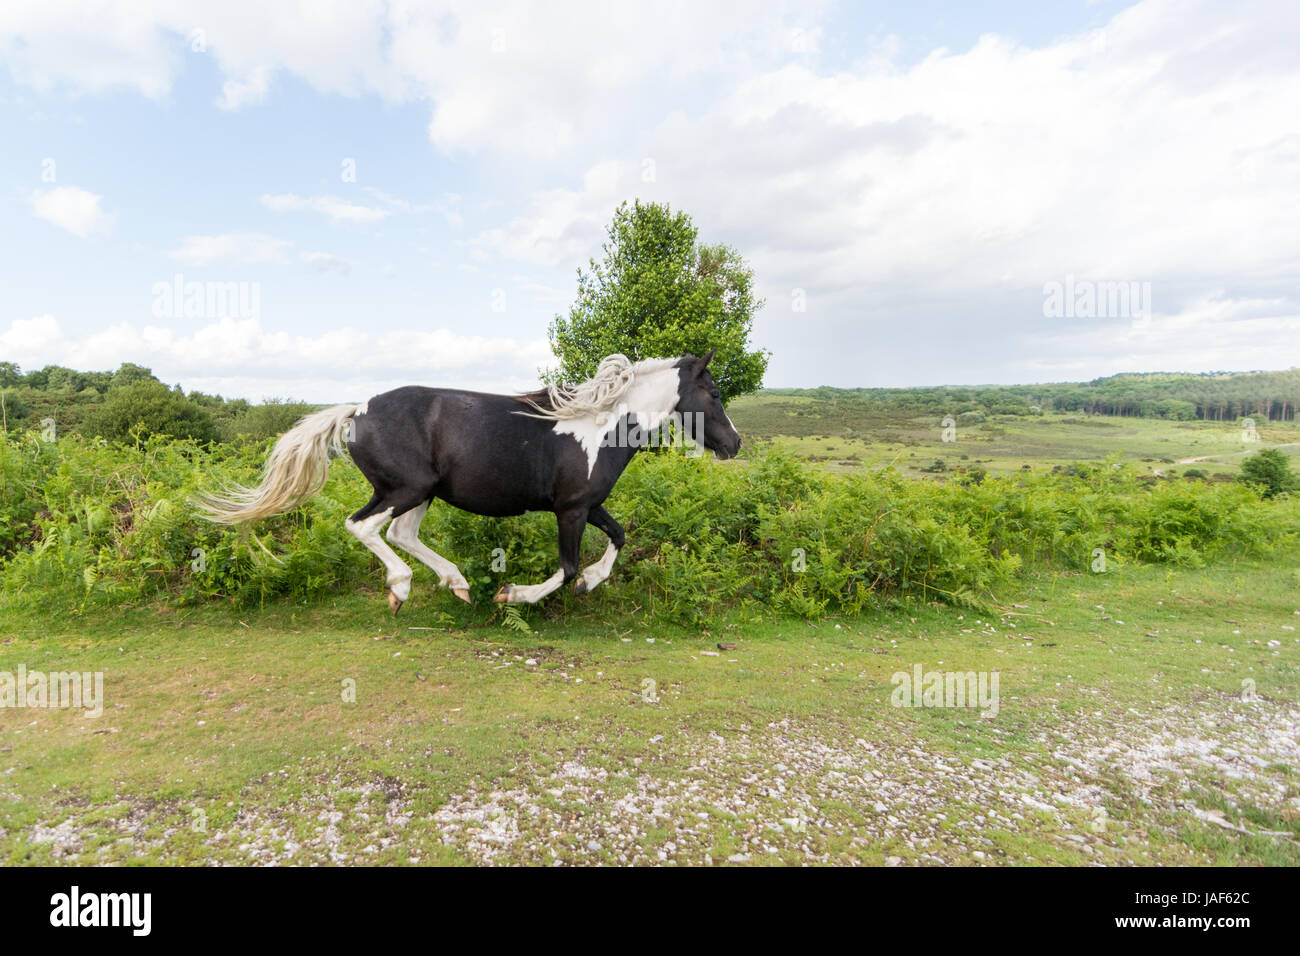 Godshill, New Forest, Hampshire, UK. 6th June, 2017. Running with the wind in its hair. A blustery weather day with - Stock Image